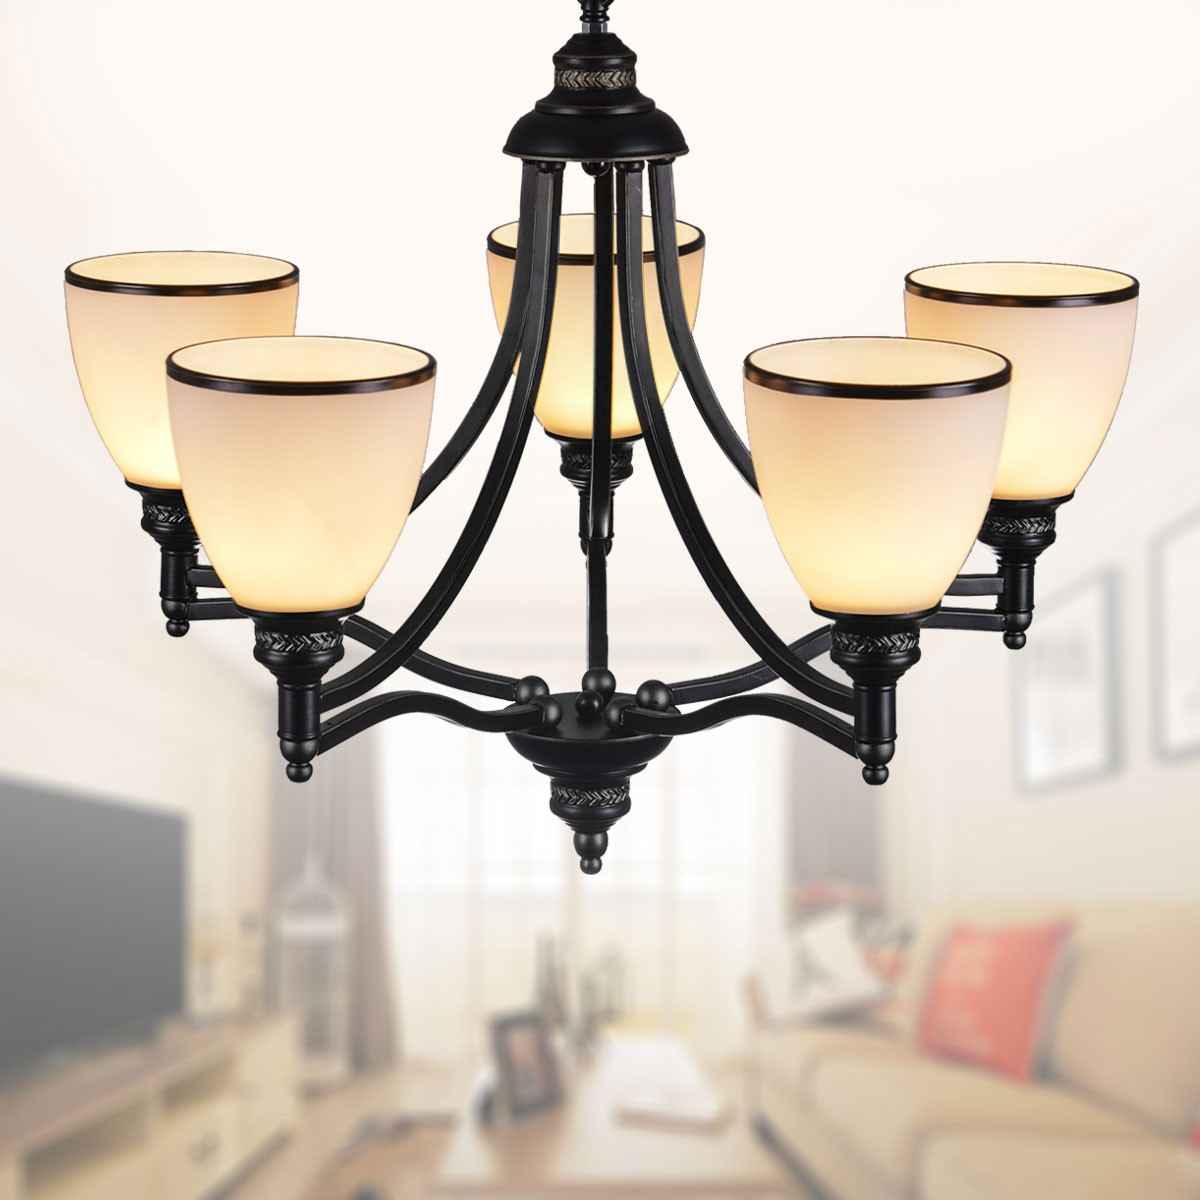 5-Light Black Wrought Iron Chandelier with Glass Shades (DK-5308-5S)